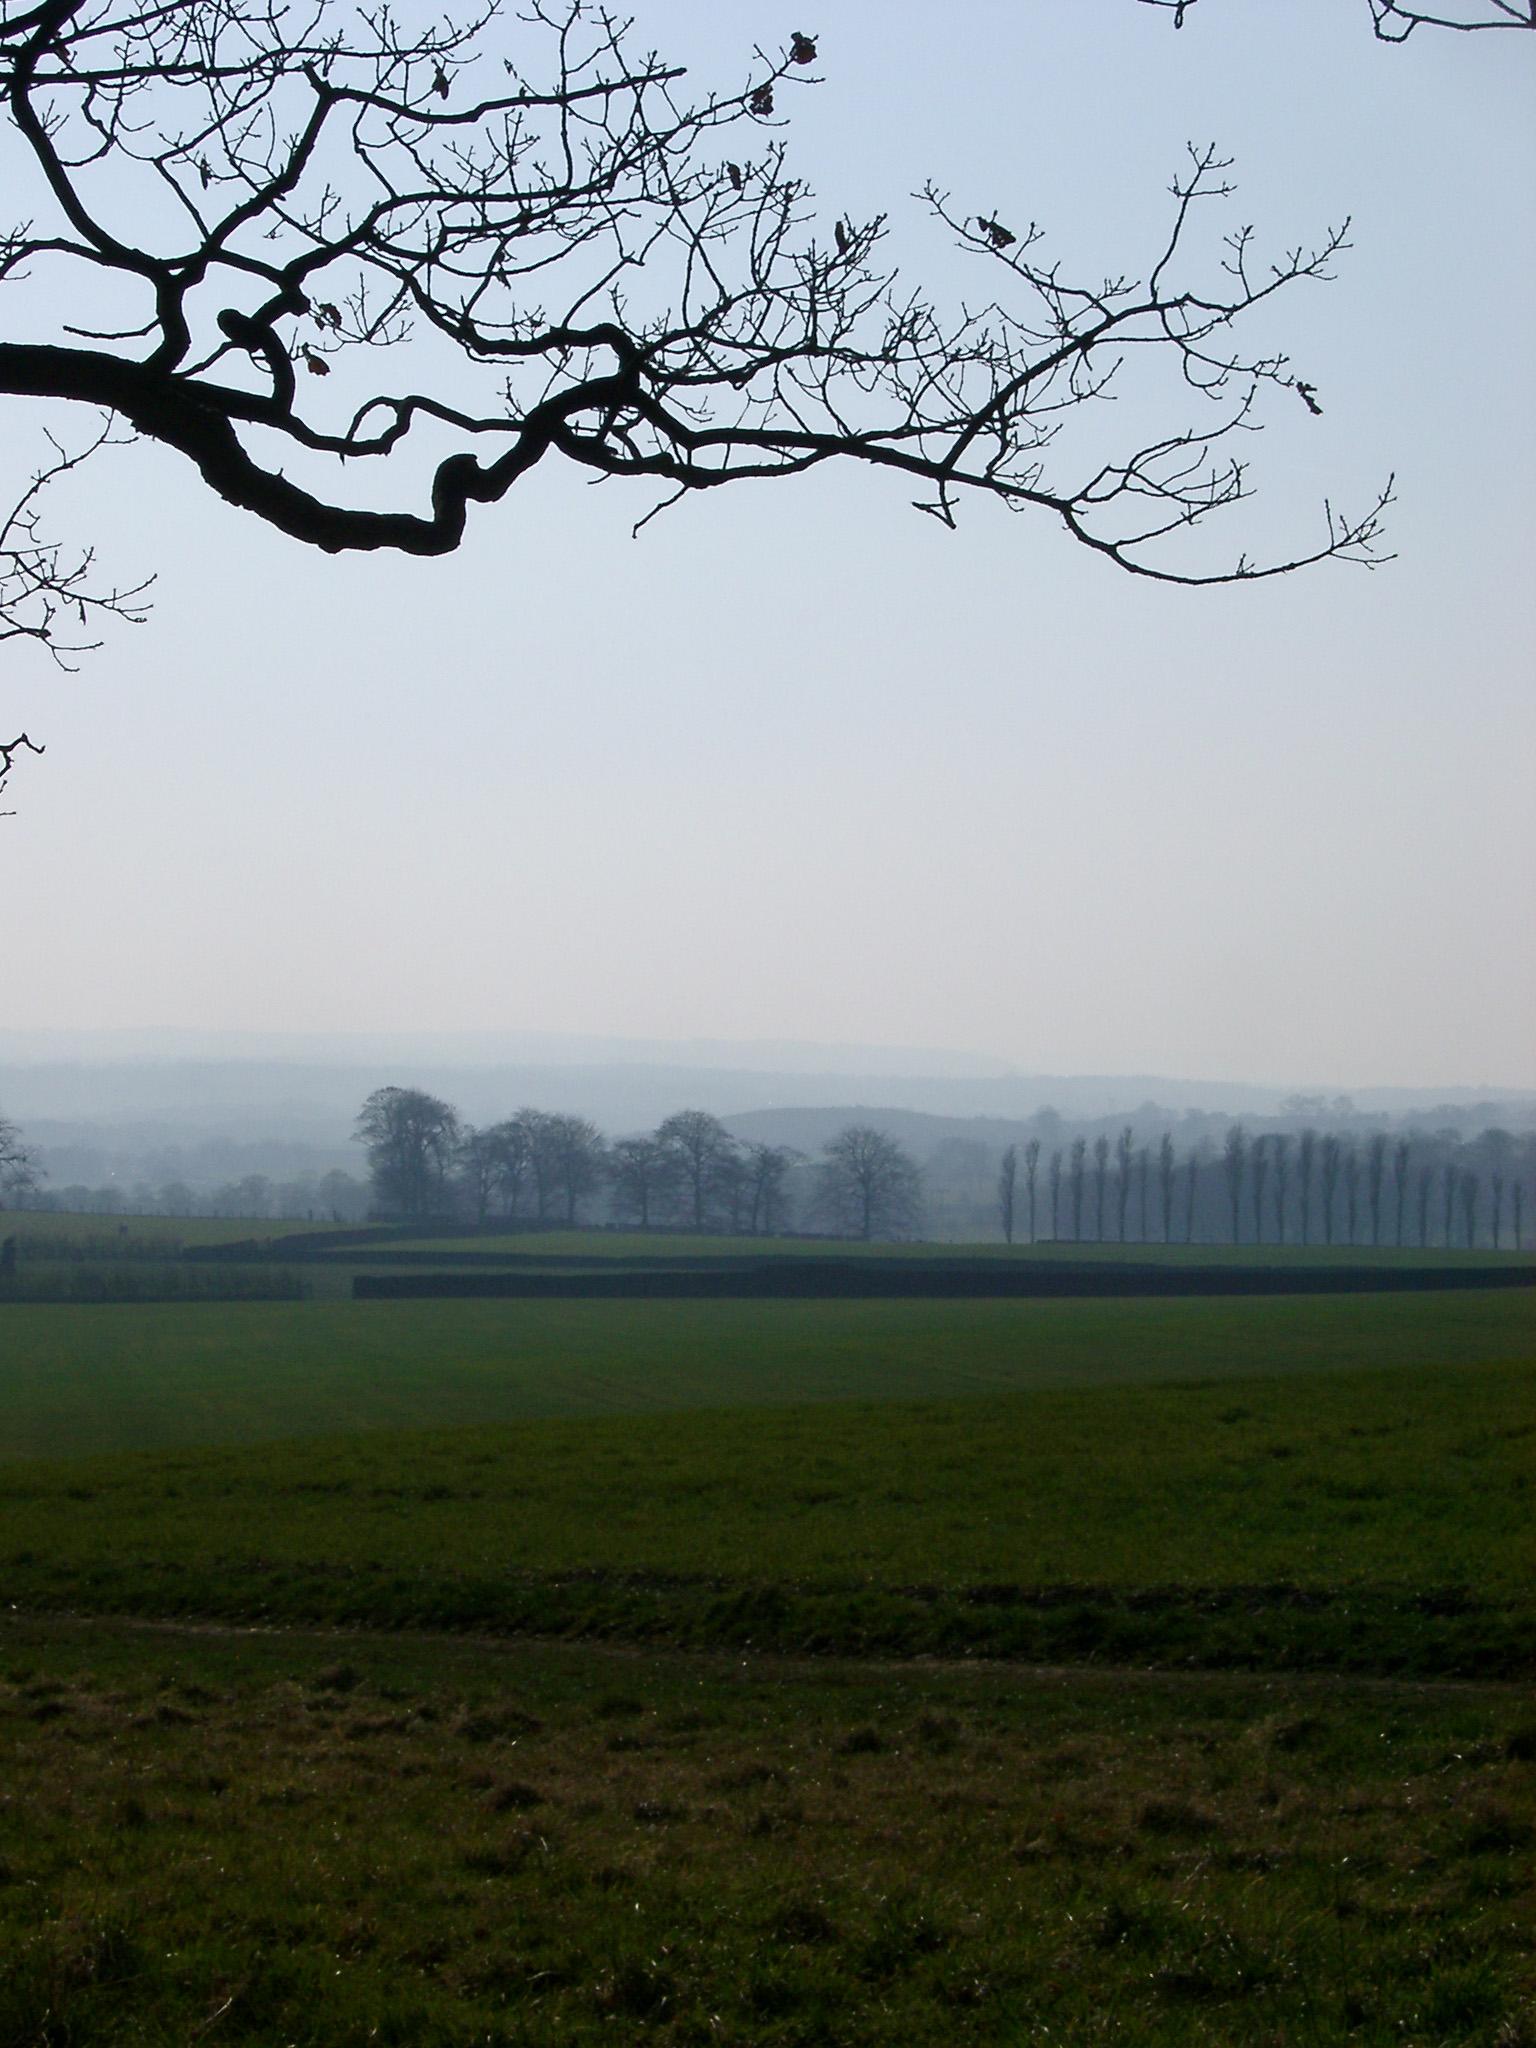 Wide Field with Fresh Green Grasses on One Foggy Day. Captured with Leafless Dead Tree.